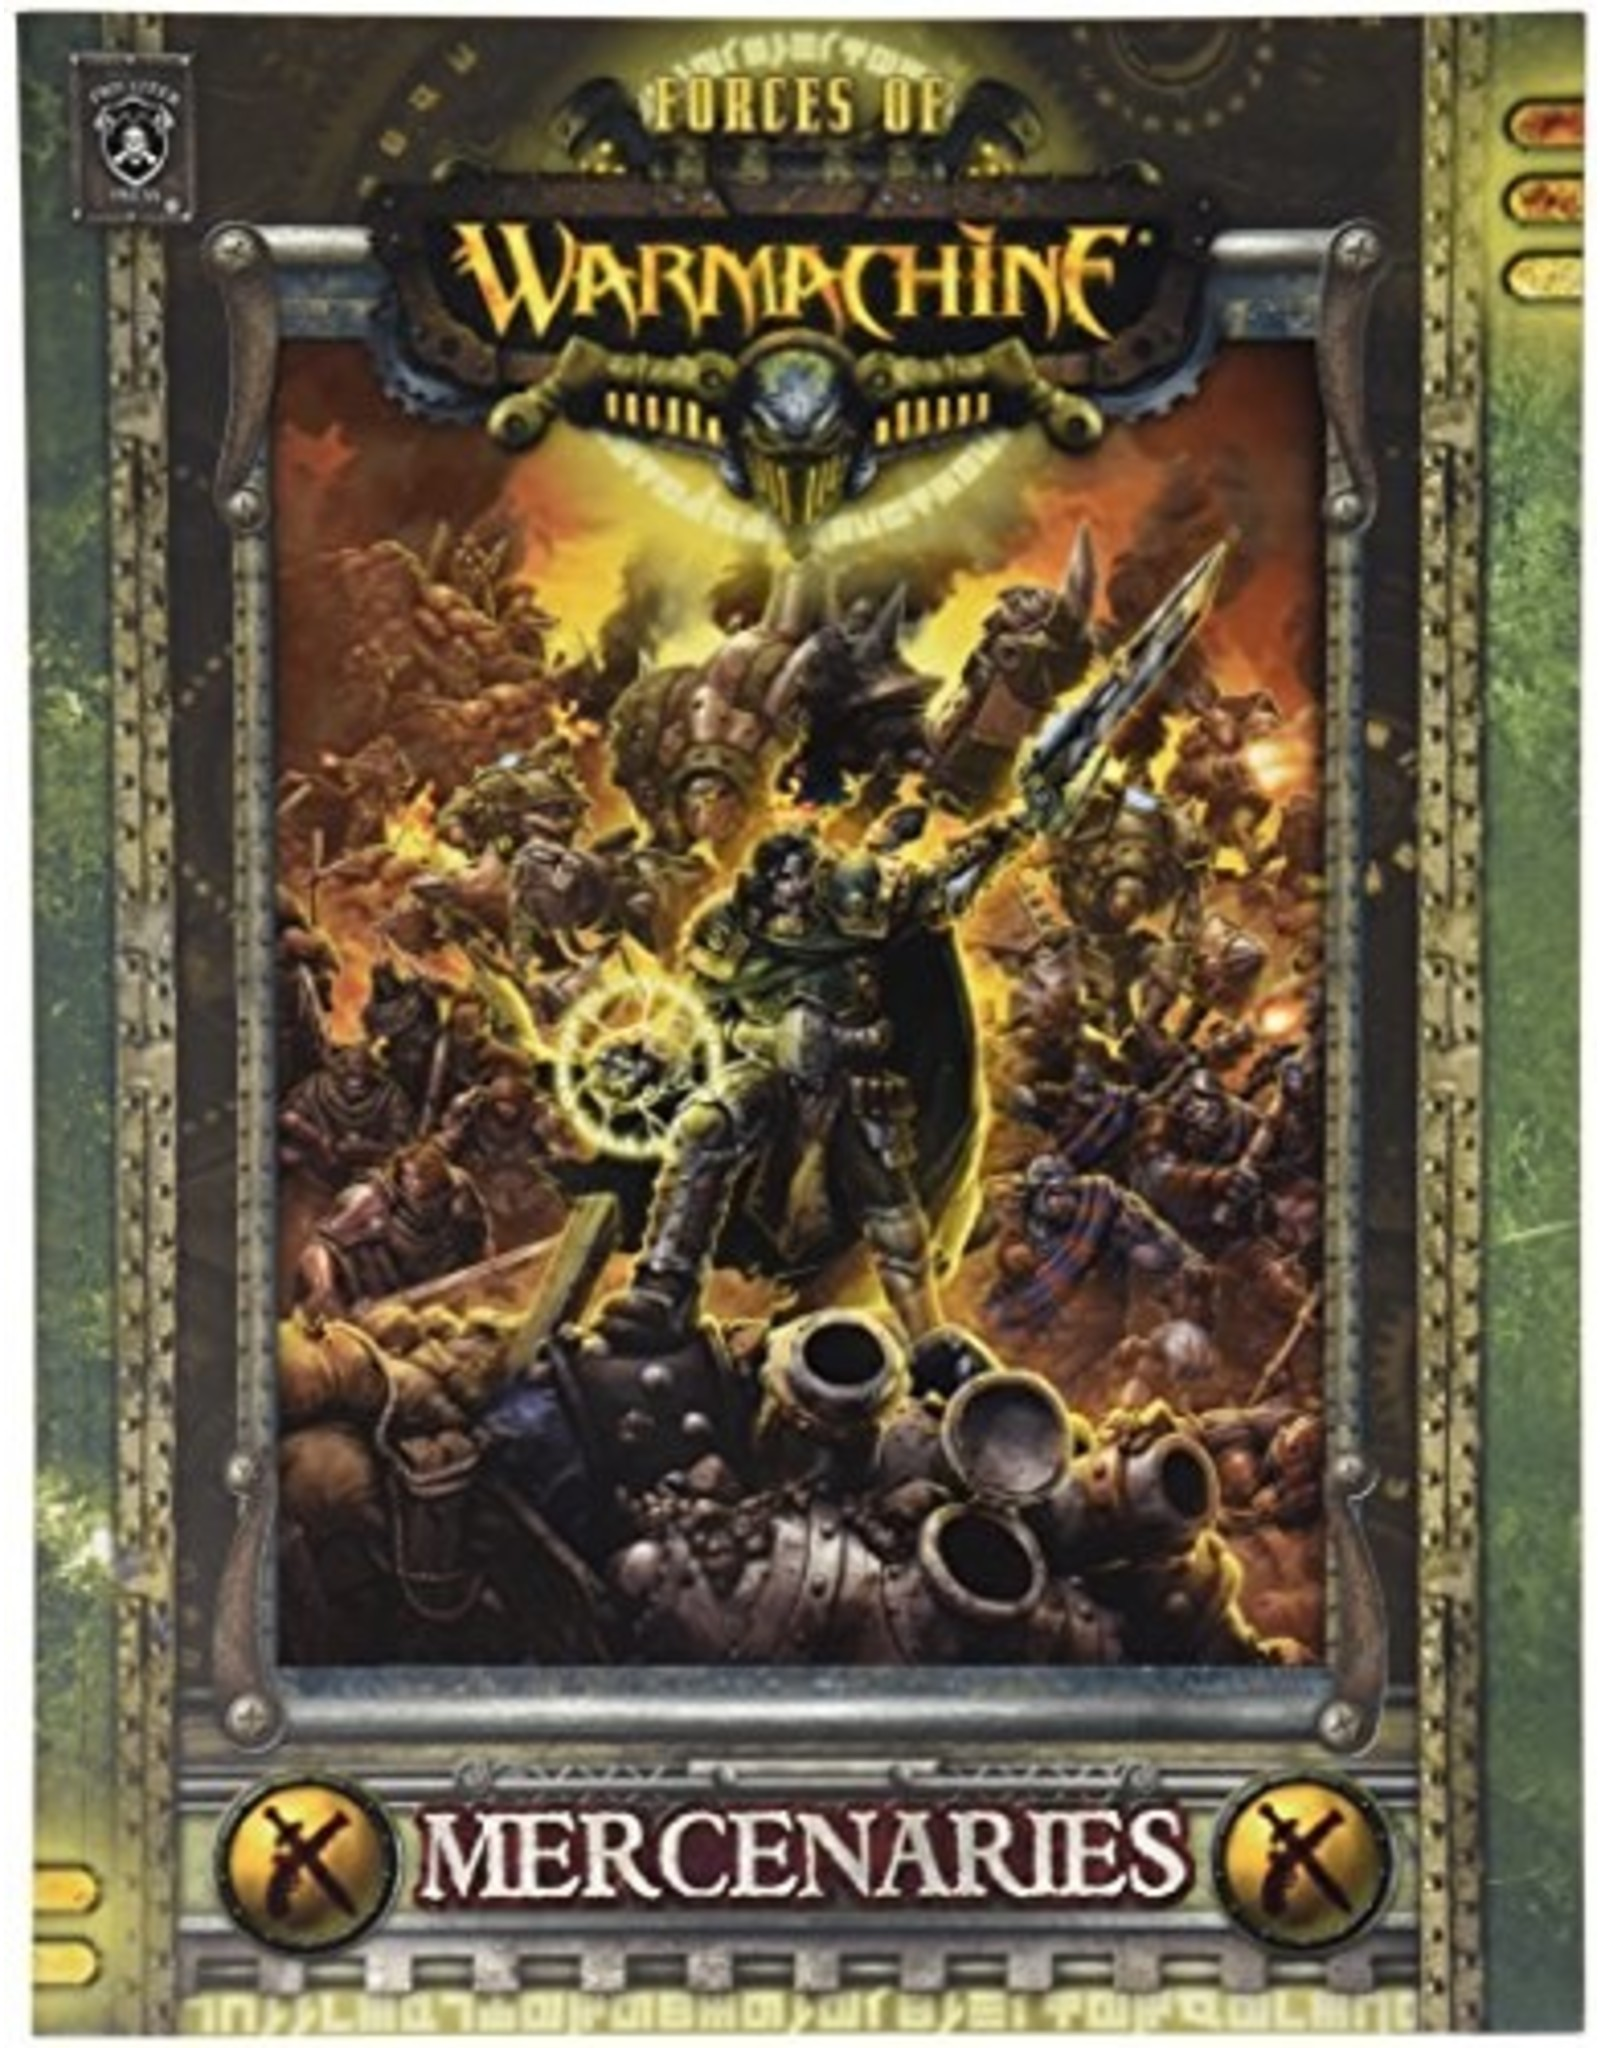 Warmachine: Forces of Warmachine - Mercenaries (Softcover)